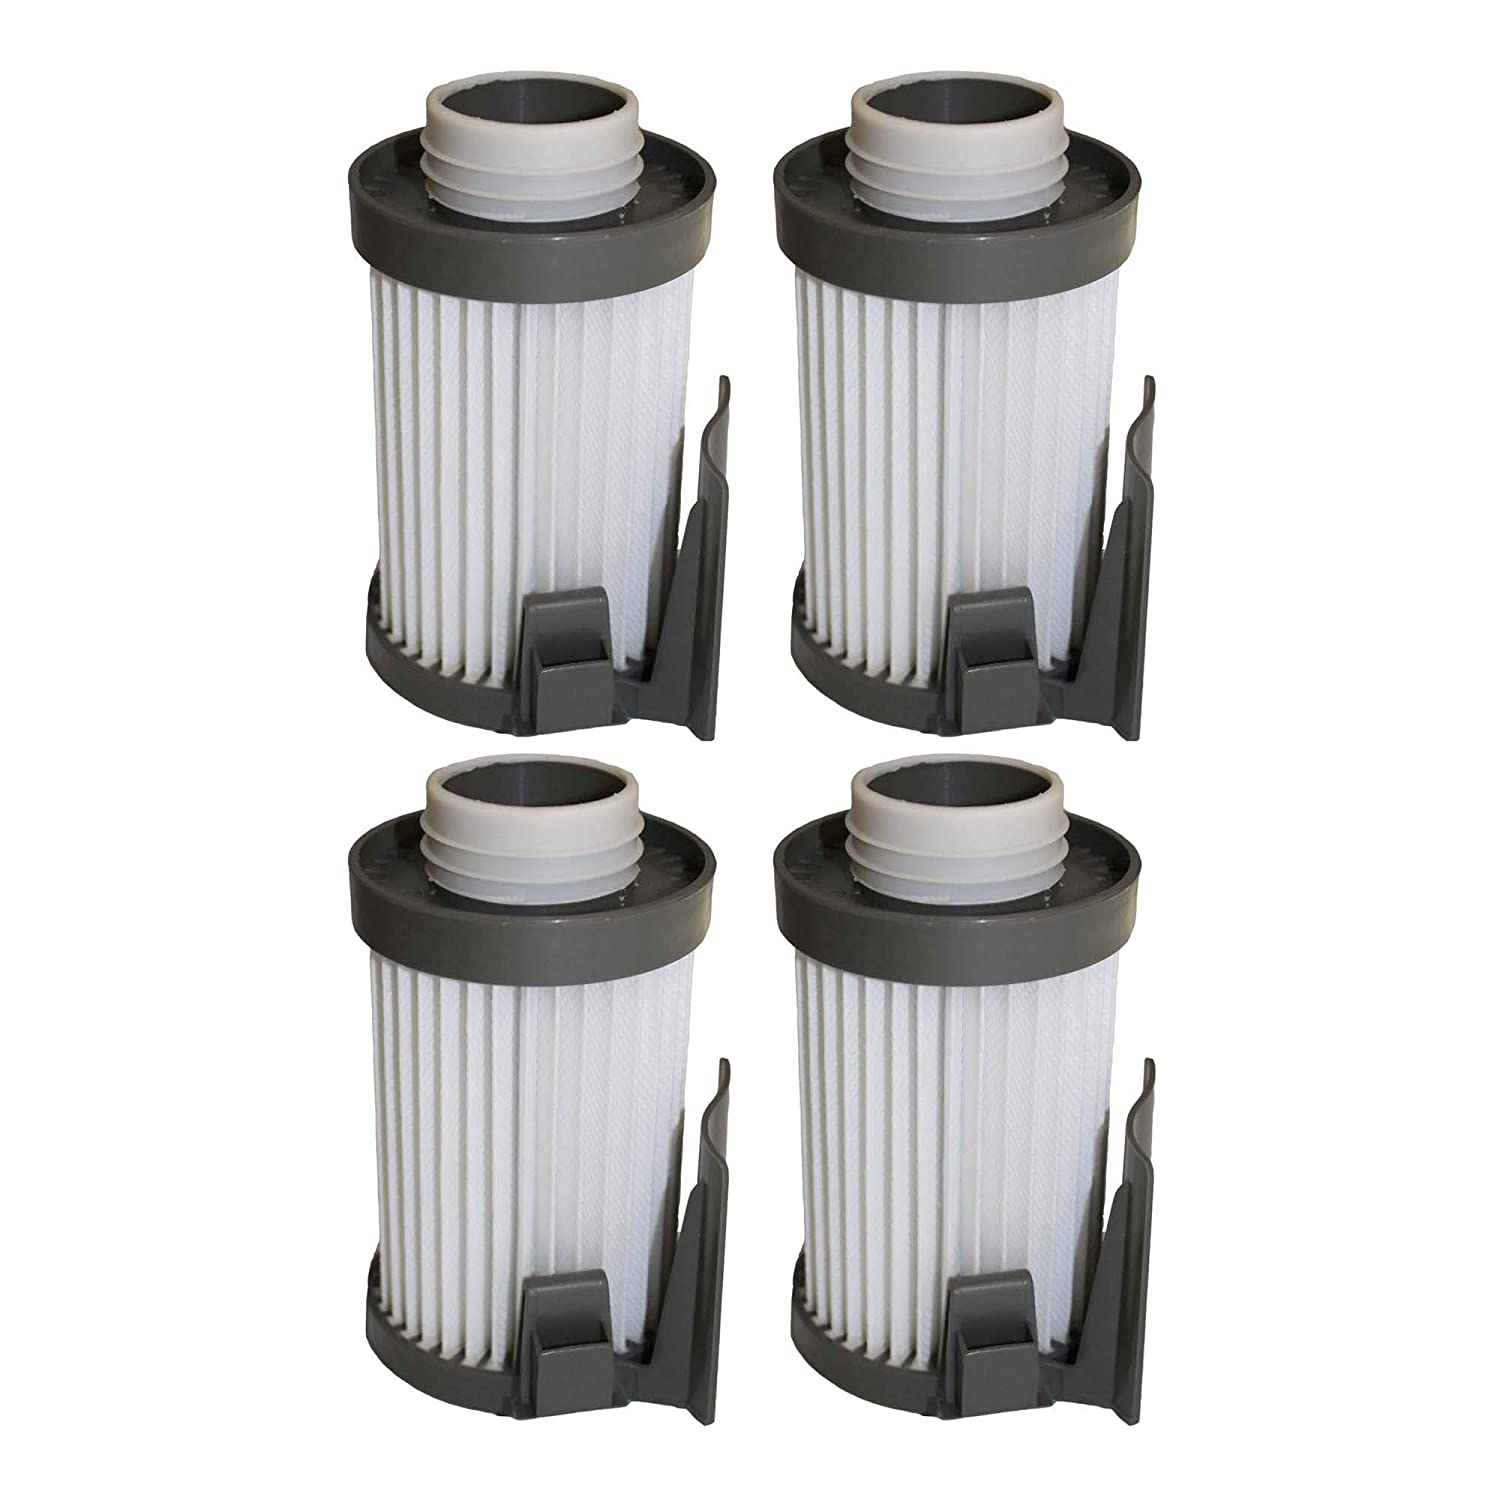 4 Eureka DCF10, DCF14 Washable Dust Cup Filters, Compare to Part # 62396-2, Designed & Engineered by Crucial Vacuum DCF-10 DCF-14